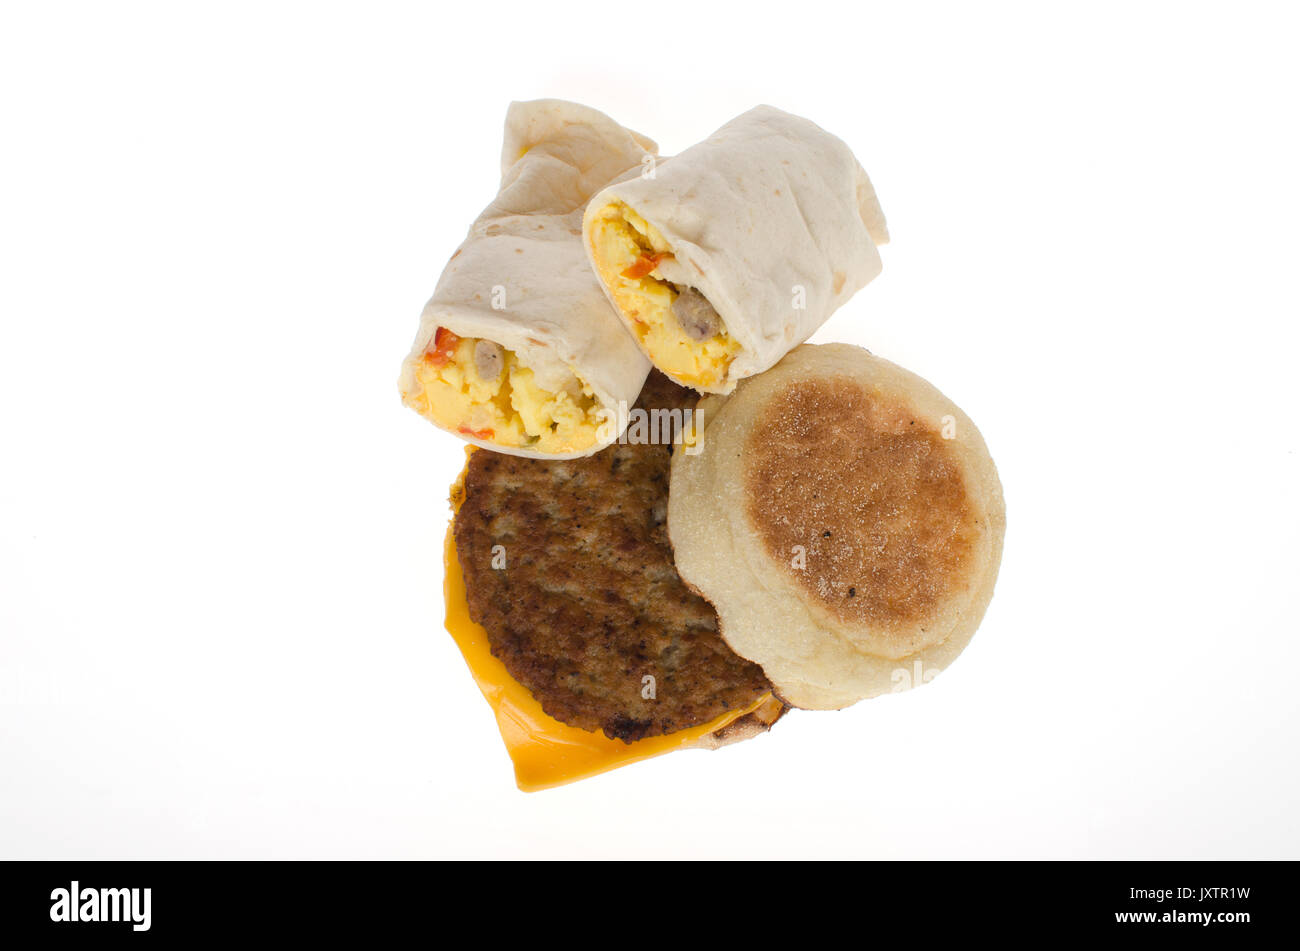 McdDonald's sausage burrito and sausage cheese mcmuffin breakfast sandwiches with no wrappers on white background, cut-out. USA - Stock Image